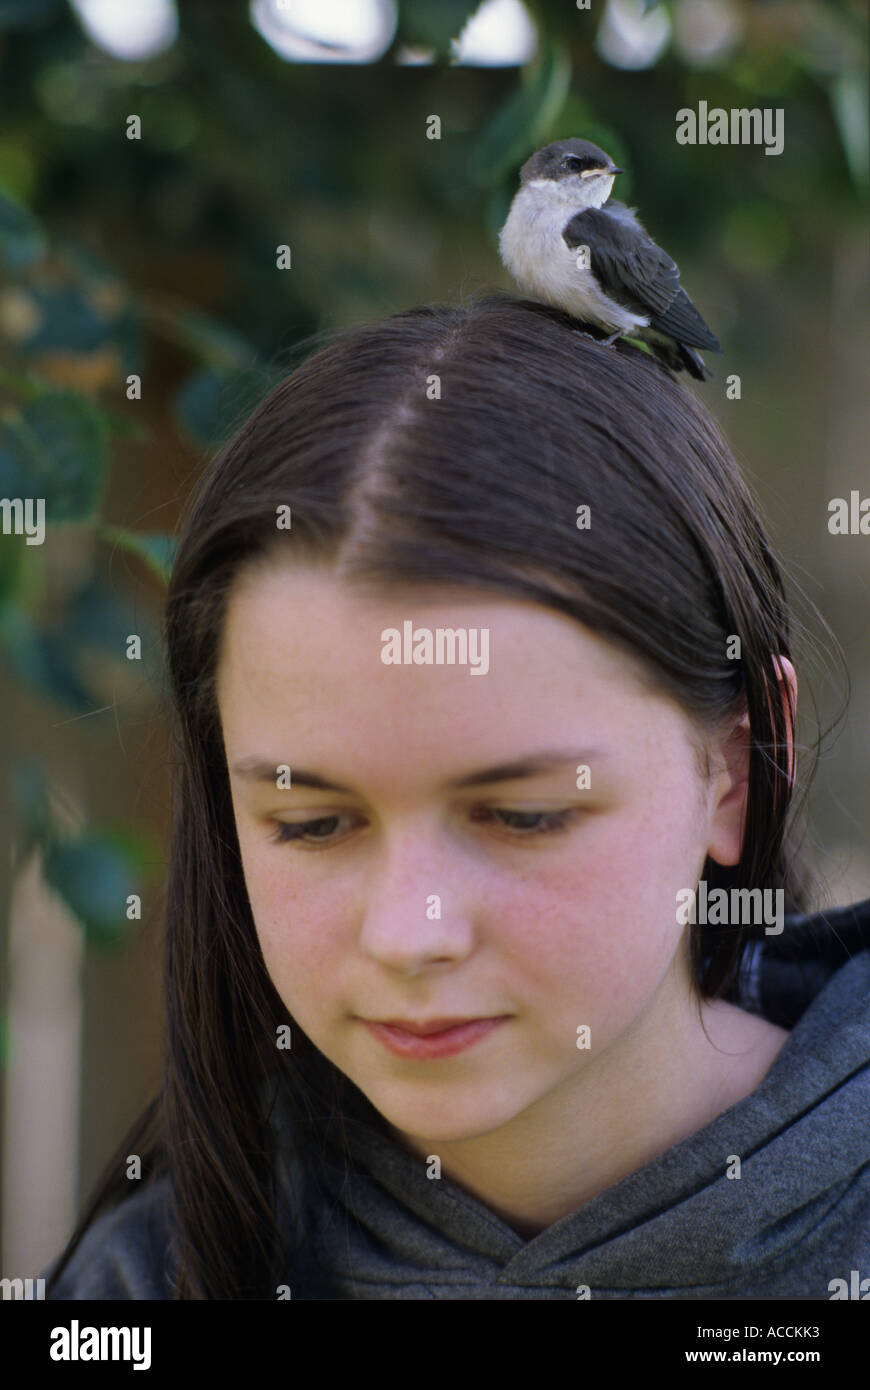 Girl Teen Teenager Transition Age 13 14 15 Years Brunette: Baby Swallow On Teen Girls Head Stock Photo: 7494258